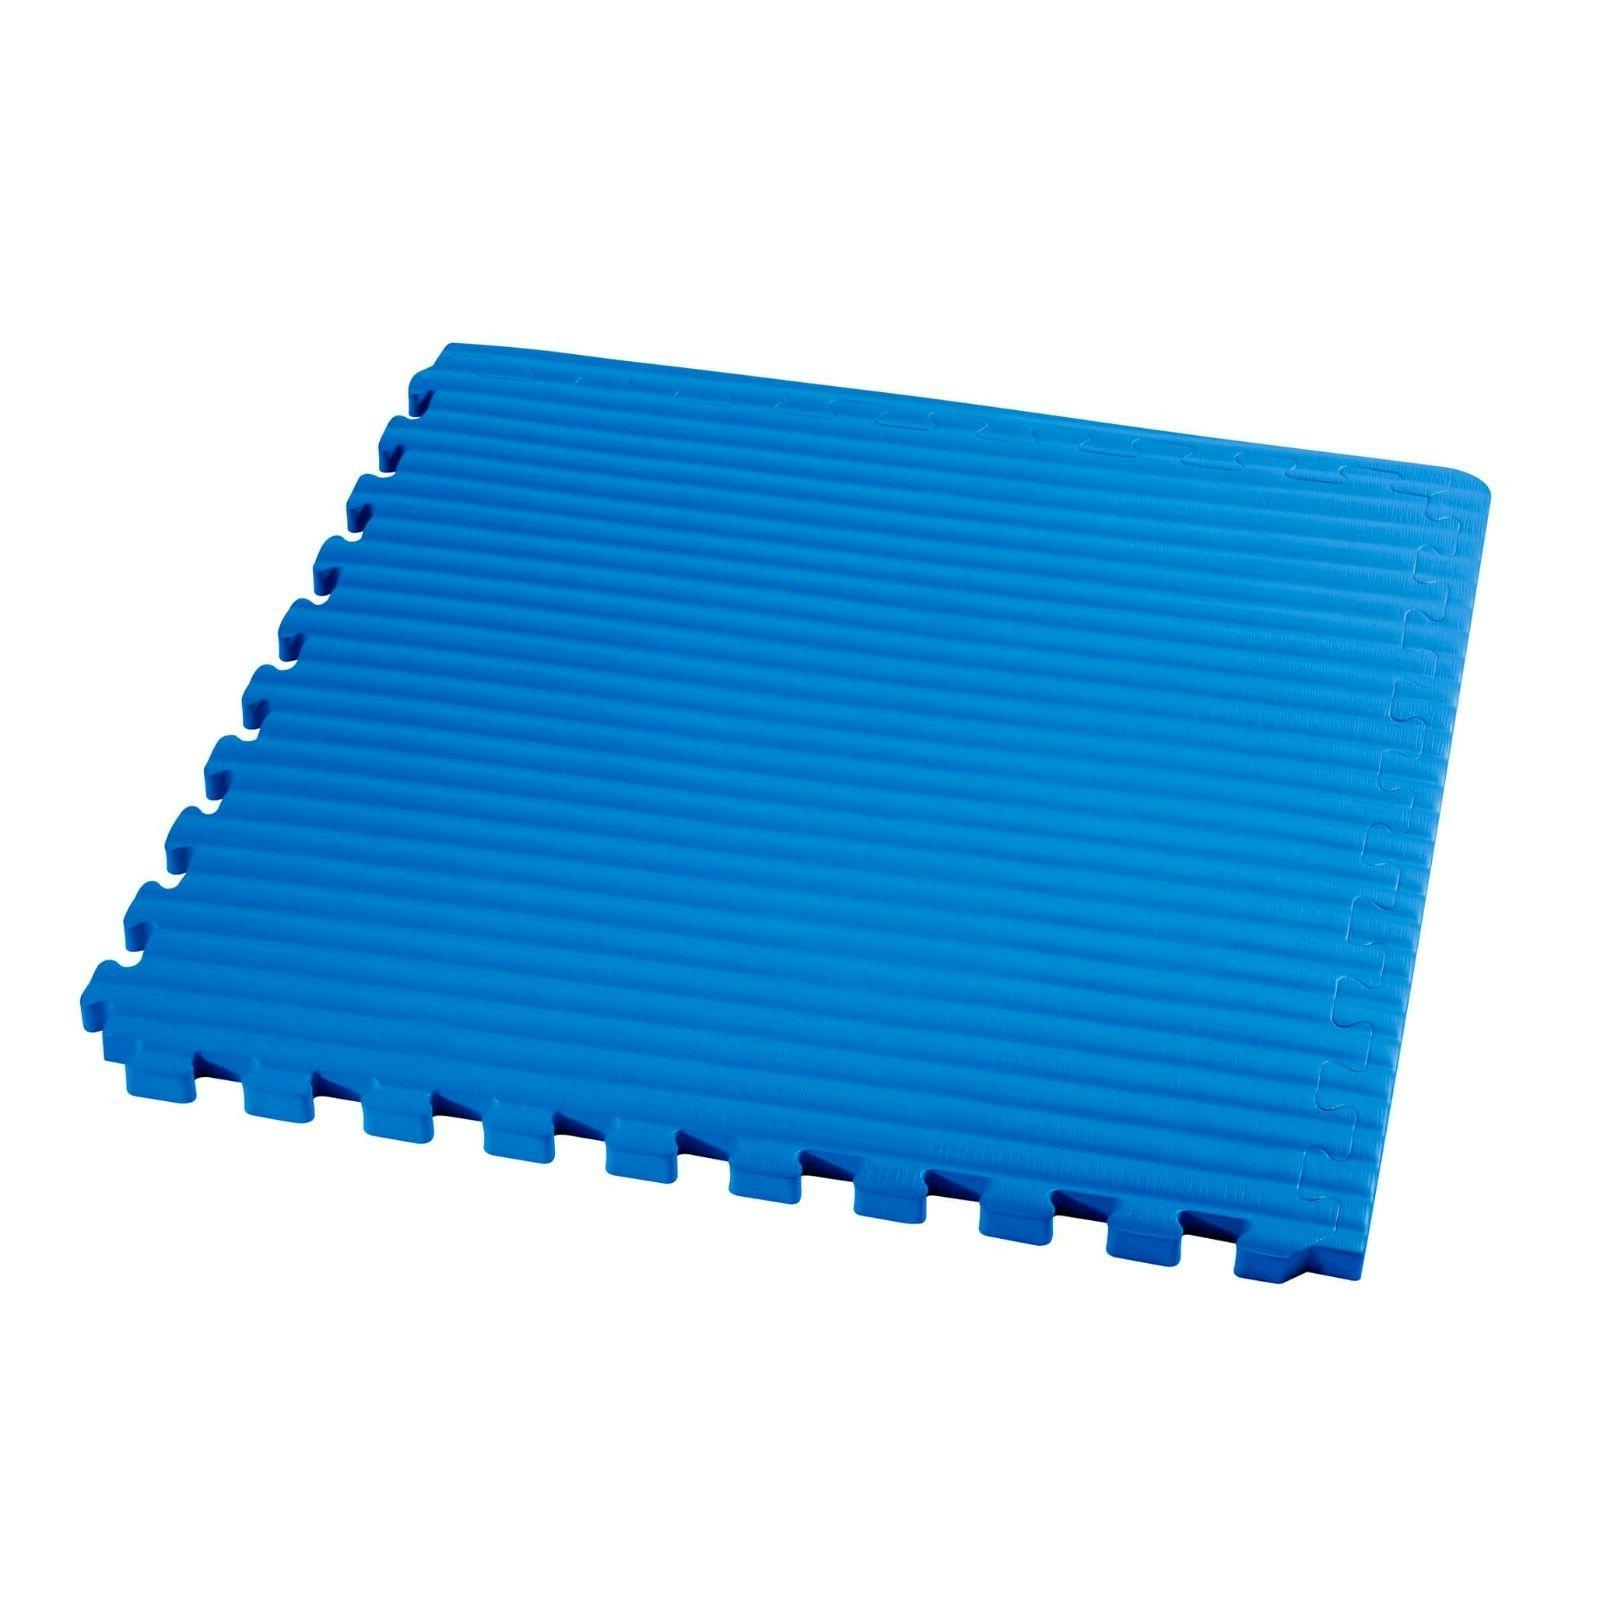 """48 sf Martial Floor Mats Gym Floor Exercise 3/4"""" thick"""